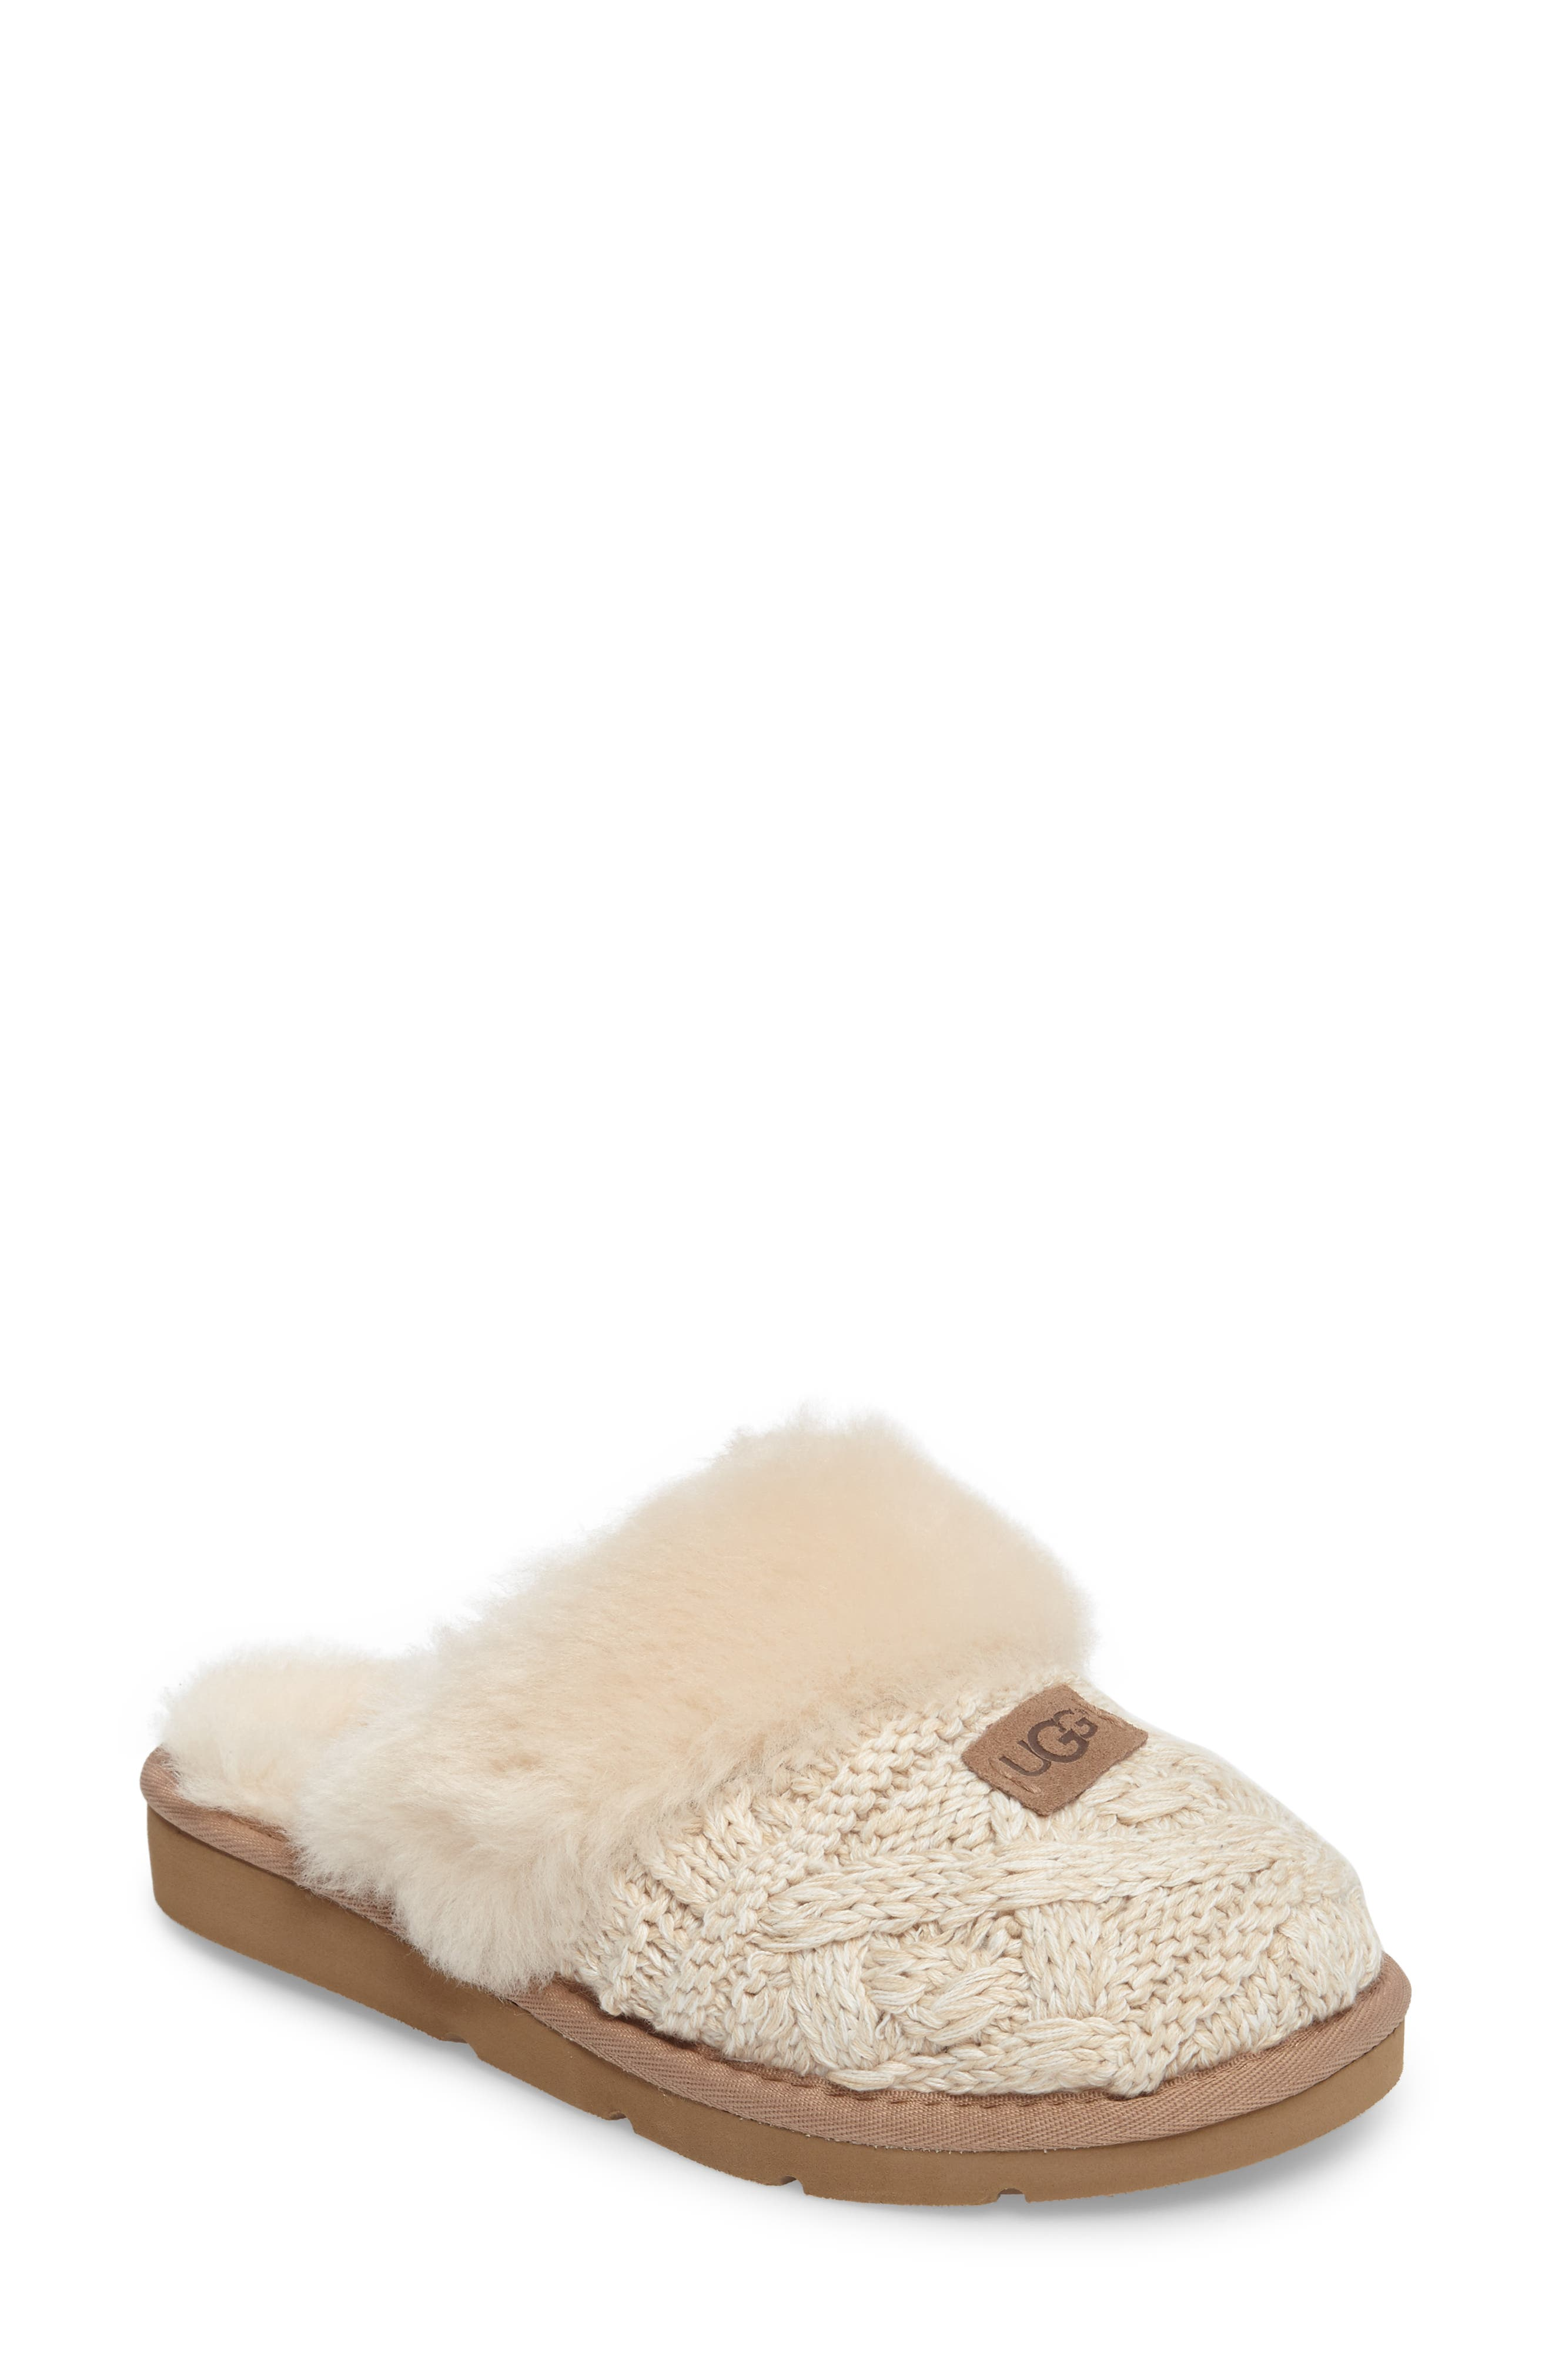 Alternate Image 1 Selected - UGG® Cozy Cable Slipper (Women)